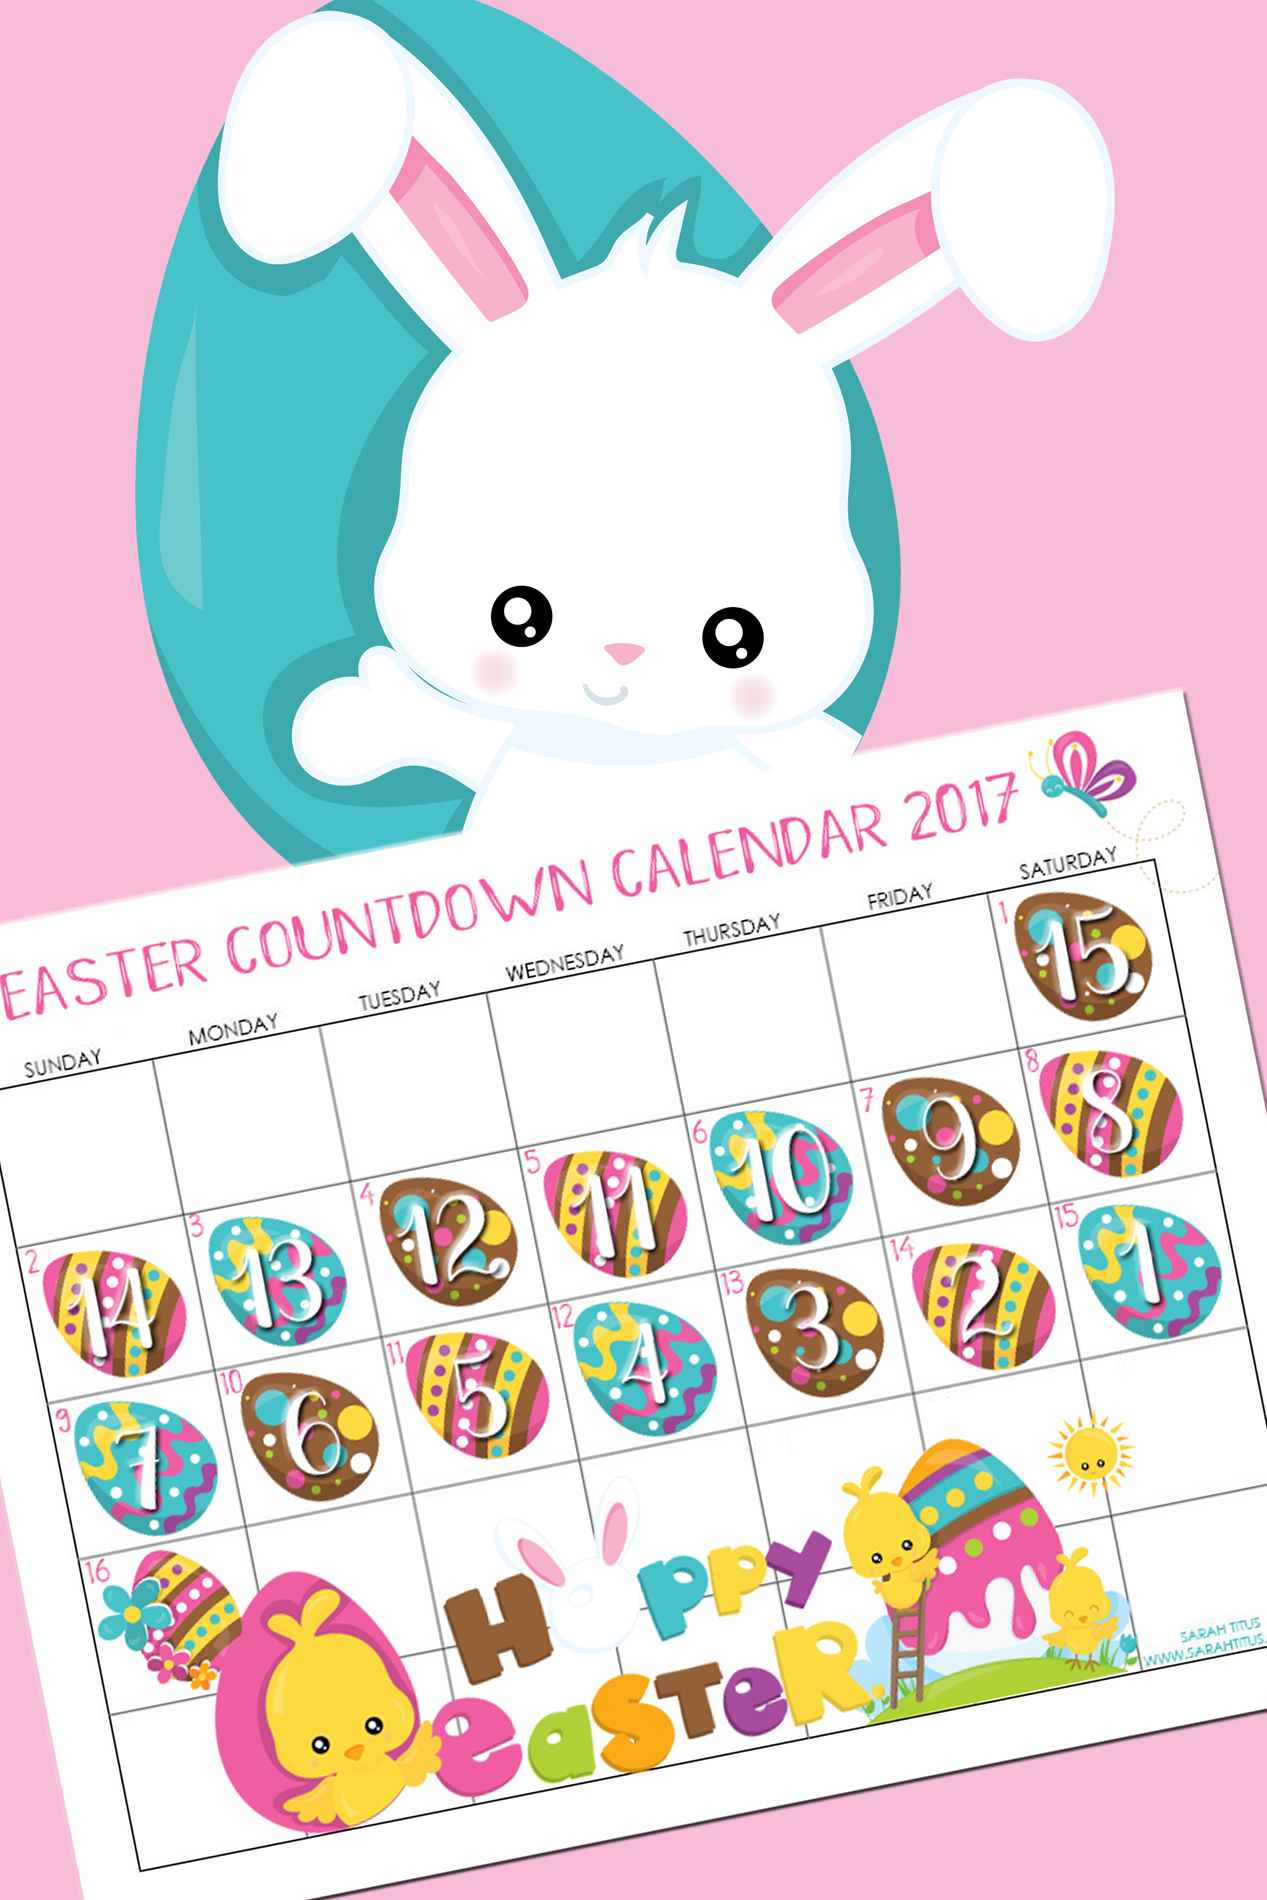 This unique Easter countdown calendar will be such a fun thing you can do with your family! Your kids will LOVE IT!